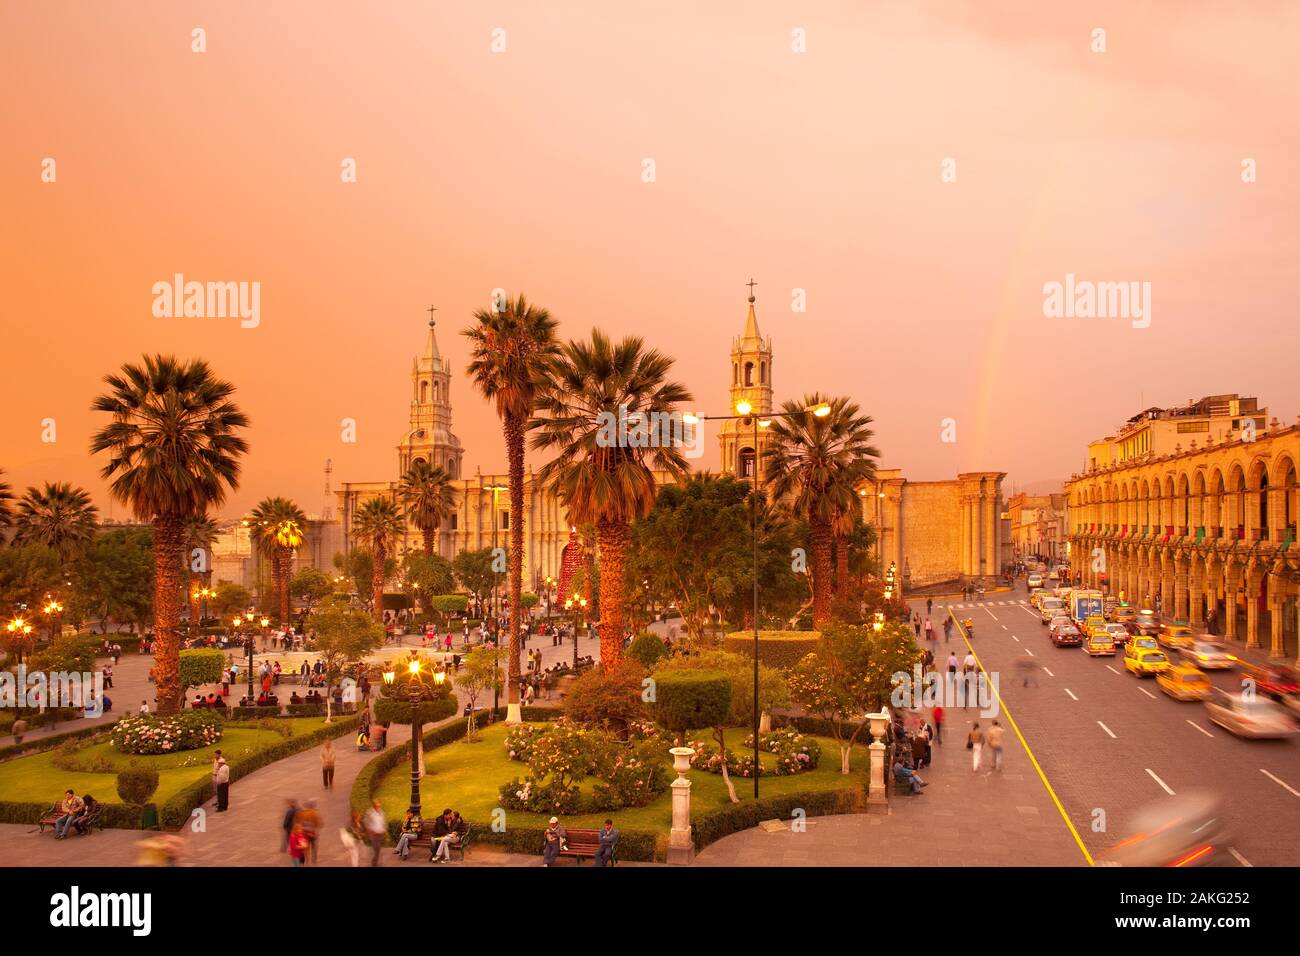 Arequipa, Peru - Basilica Cathedral of Arequipa at Plaza de Armas, main square of the city. Stock Photo